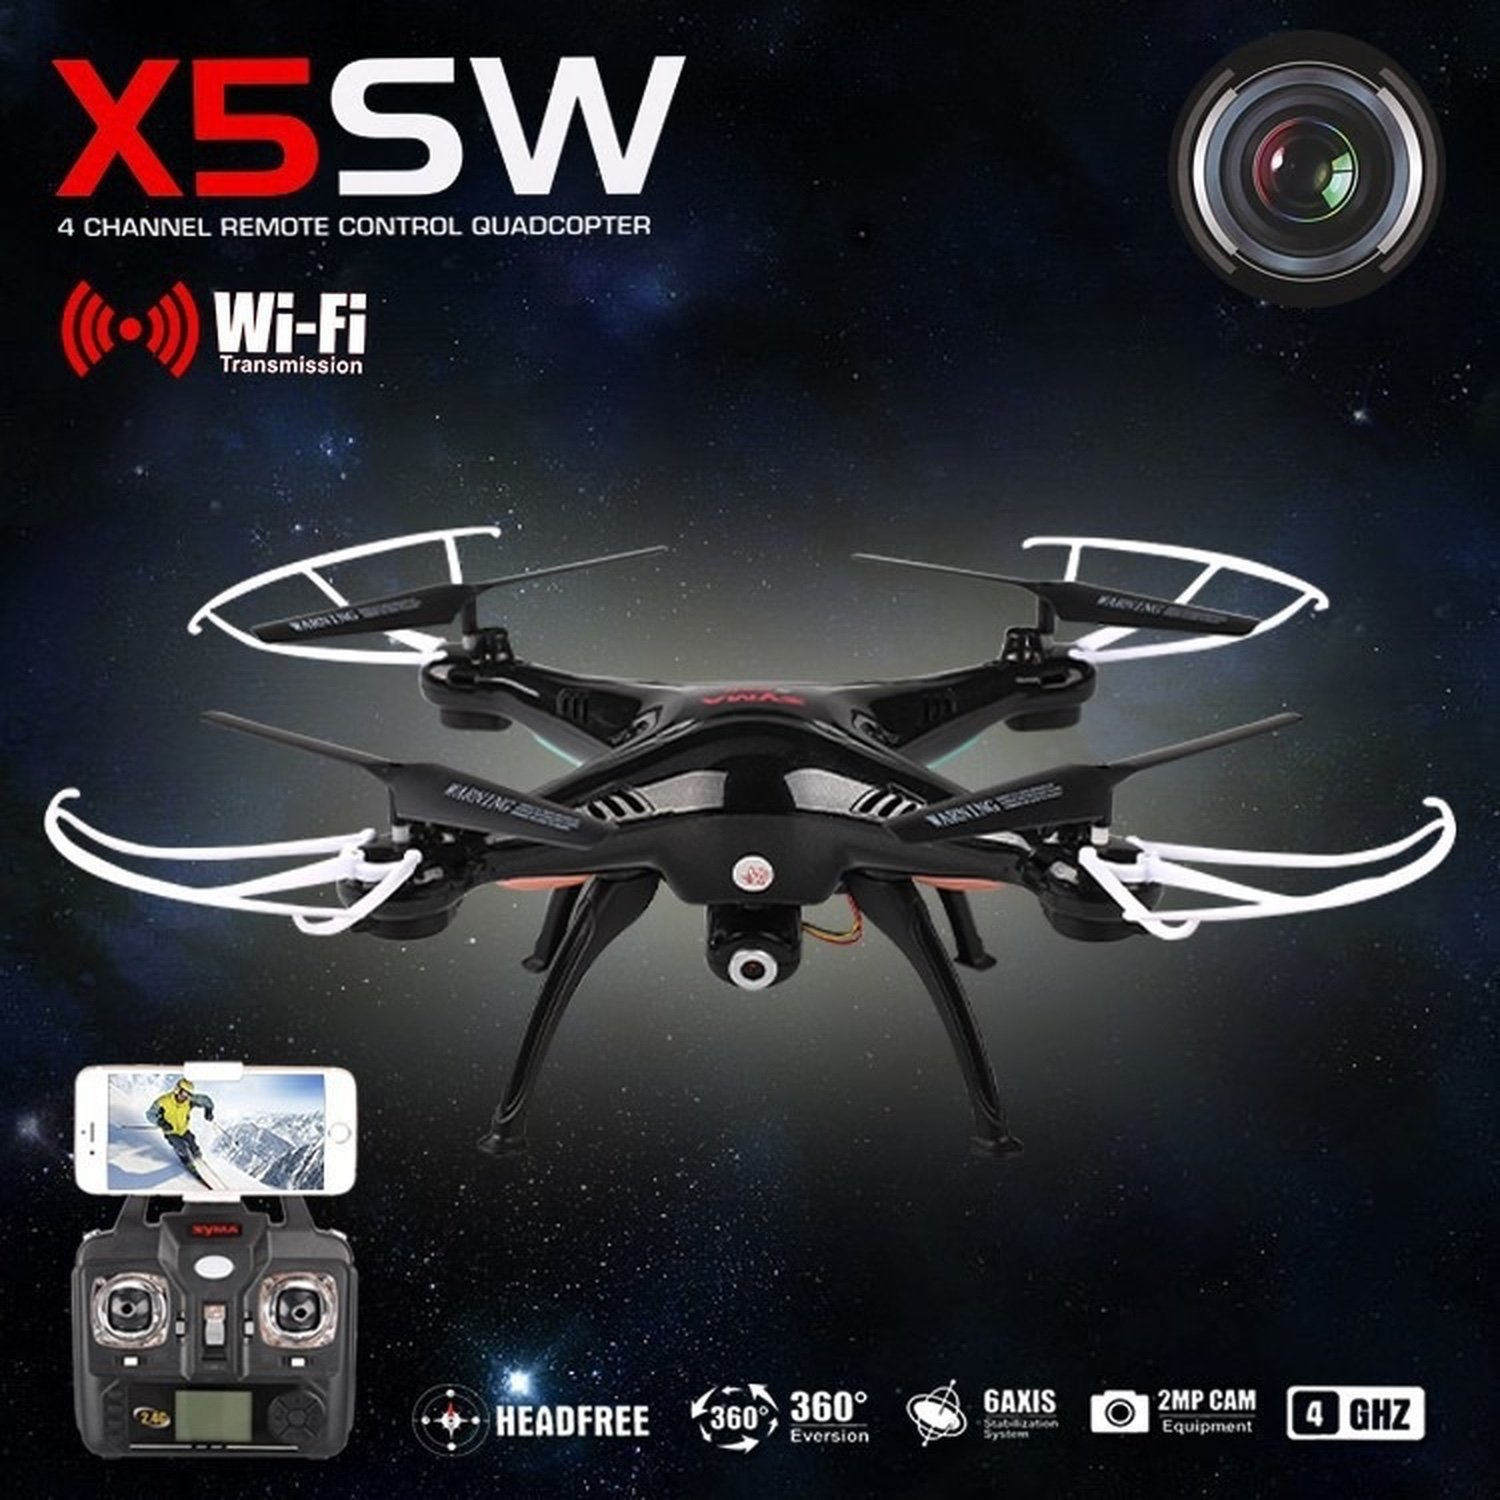 QUADCOPTER DRONE SYMA X5SW FPV Explorers 2.4GHz 4ch 6 axis Gyro RC CAMERA HD WIFI